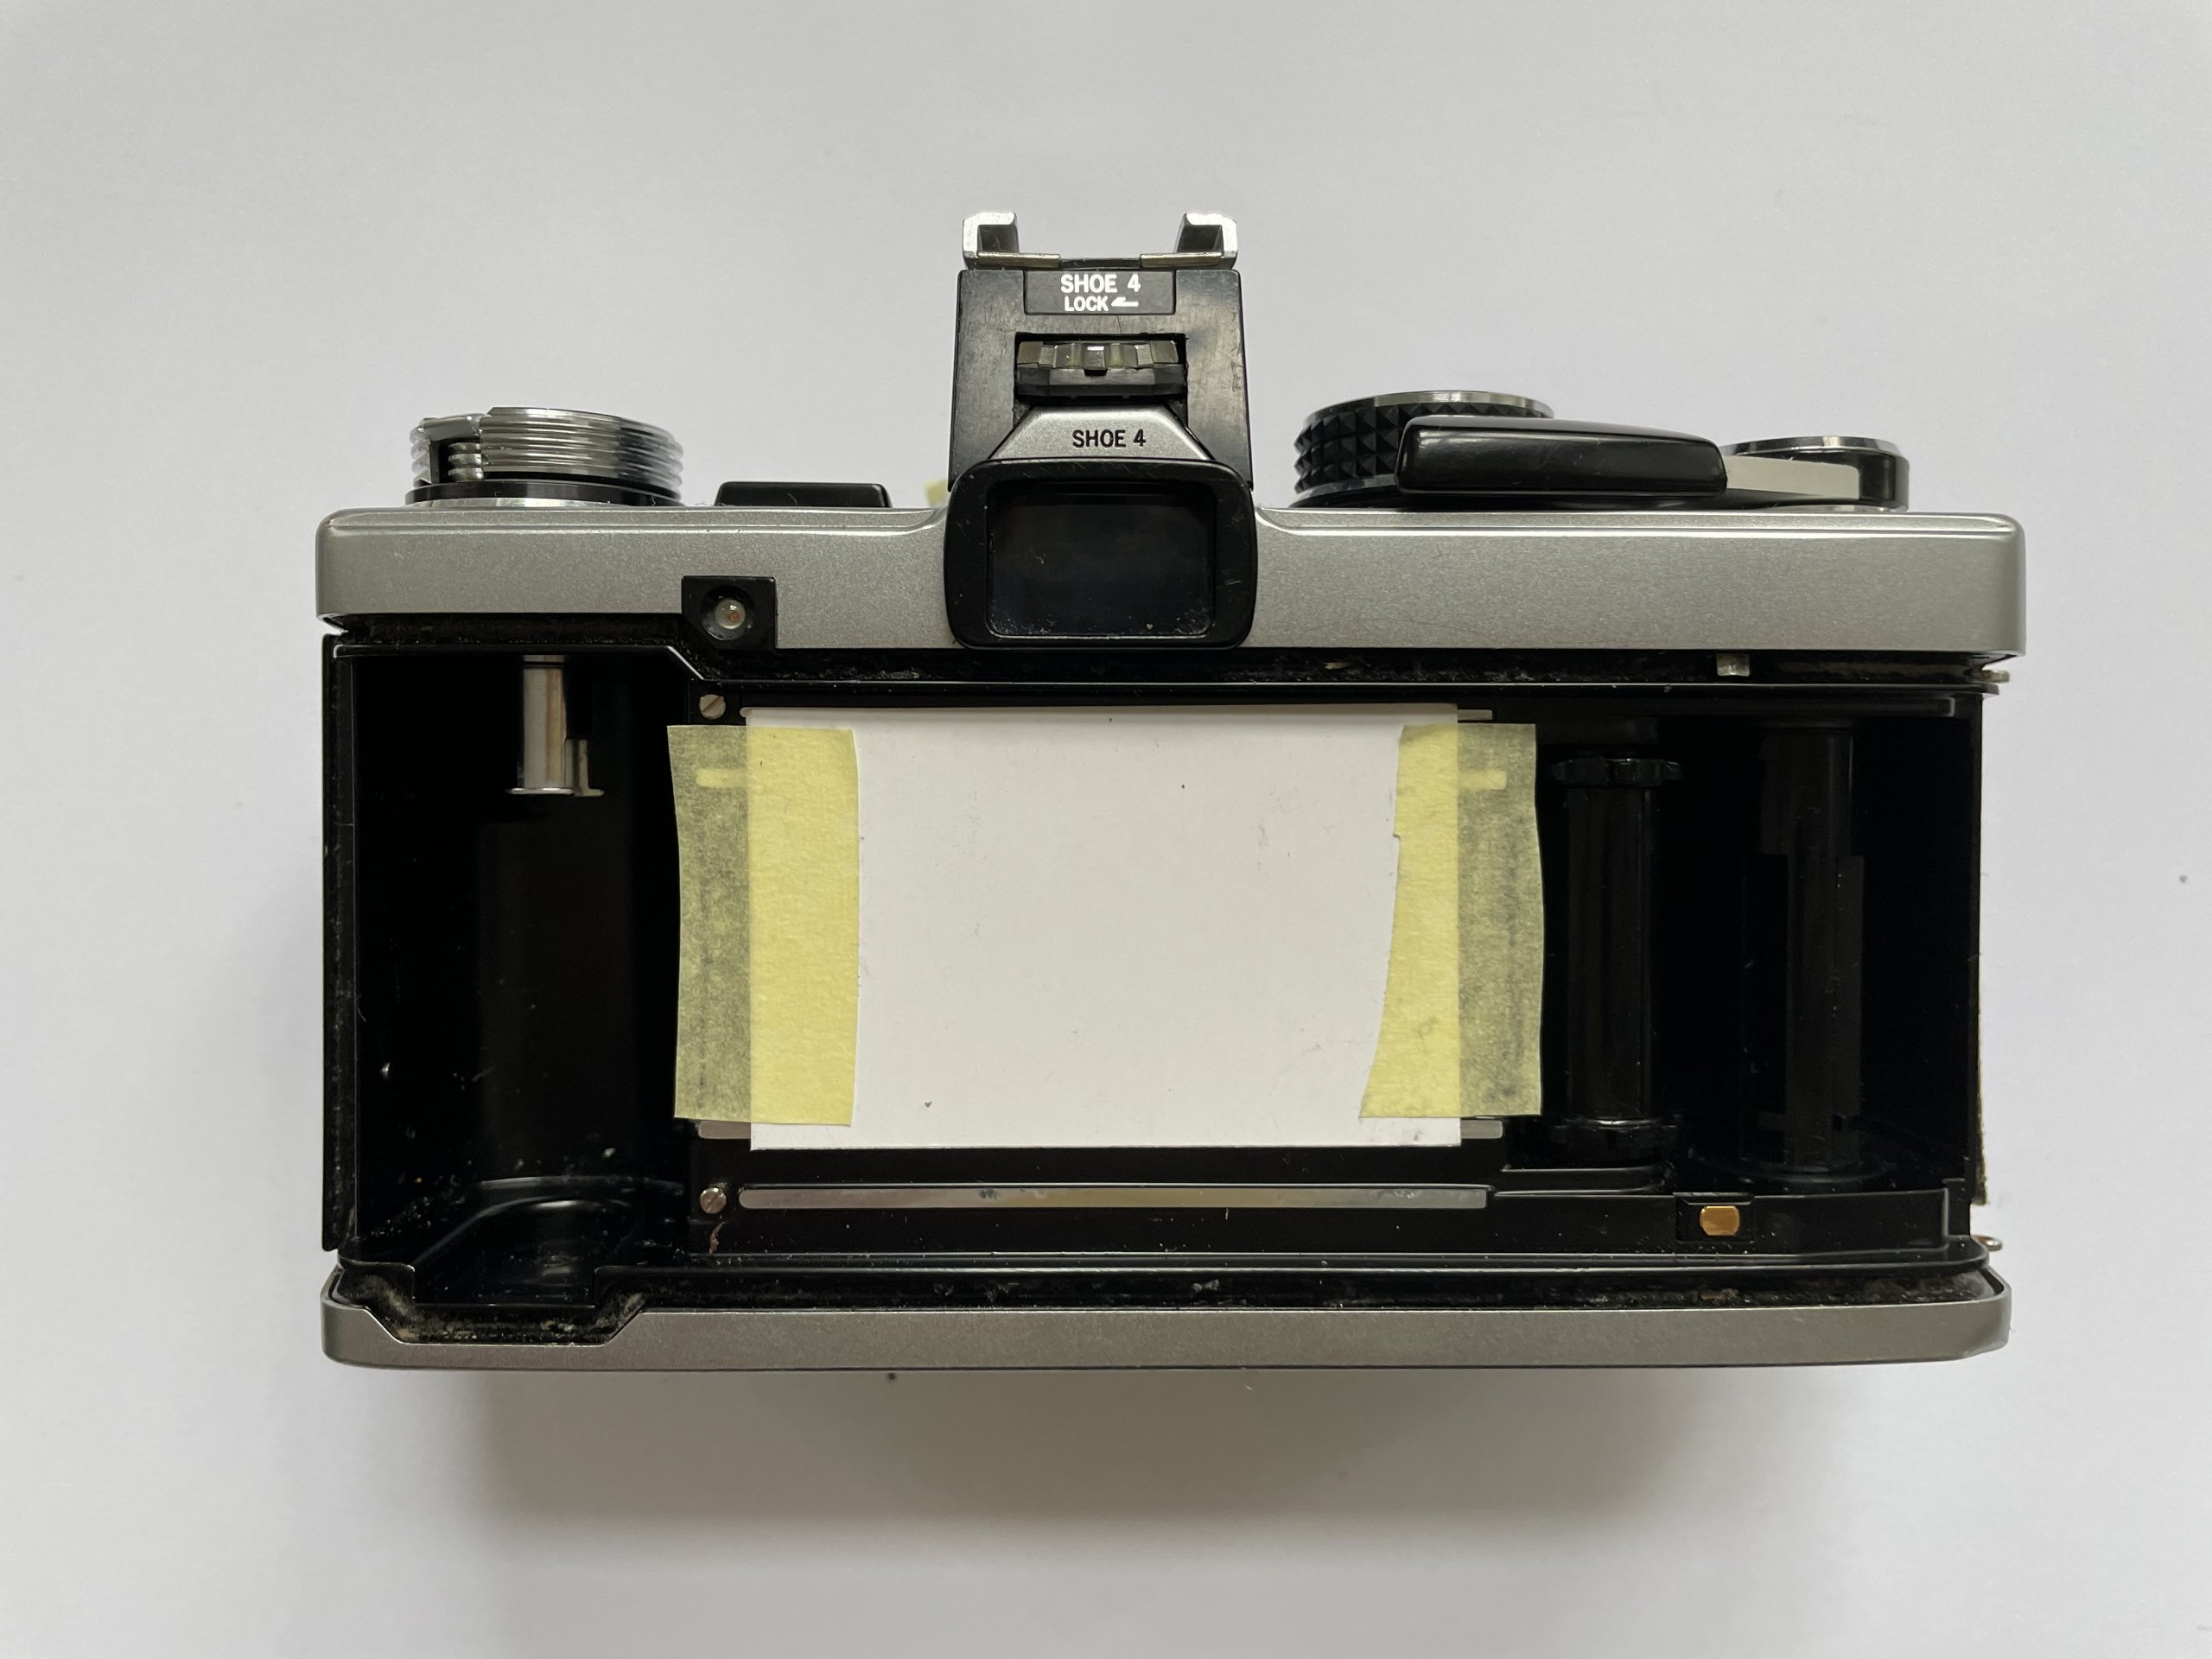 Film camera with door removed, replaced with taped-down index card